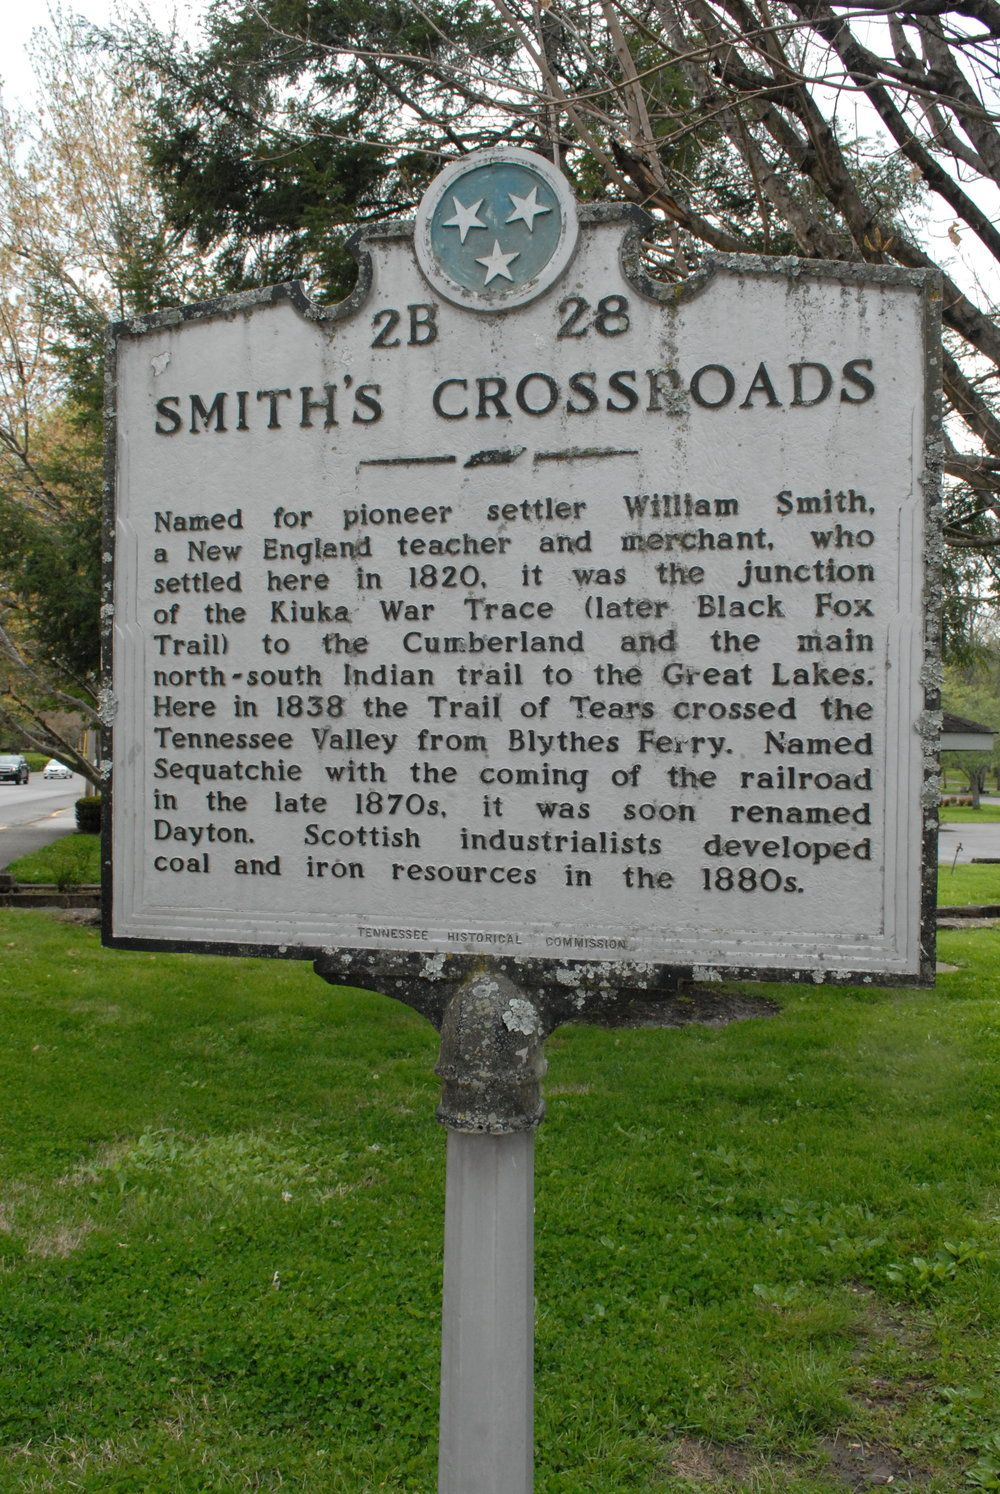 Smith's Crossroads